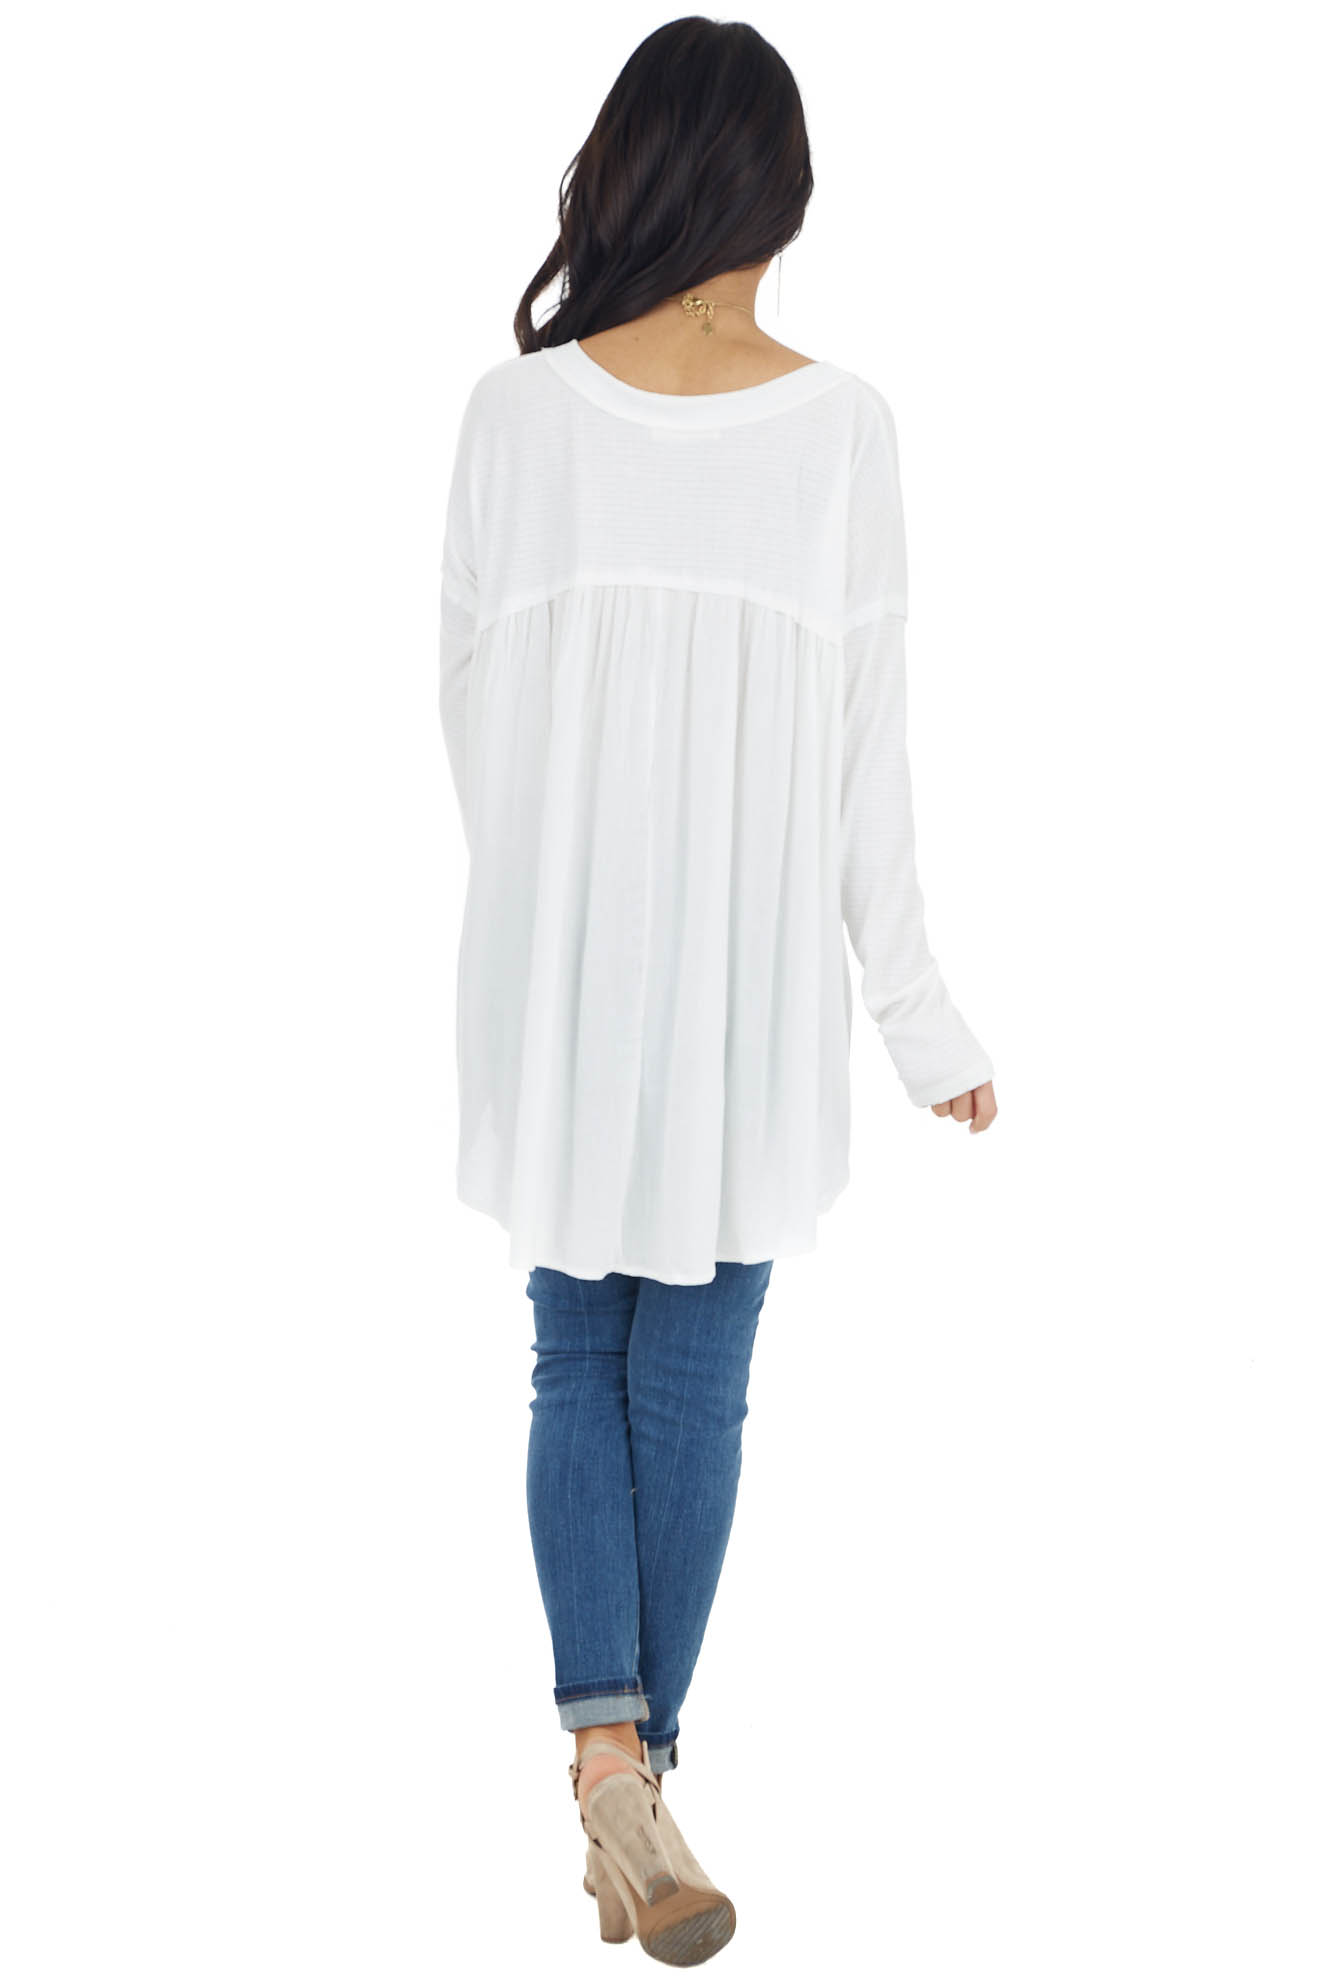 Off White Long Sleeve High Low Knit Top with Woven Contrast